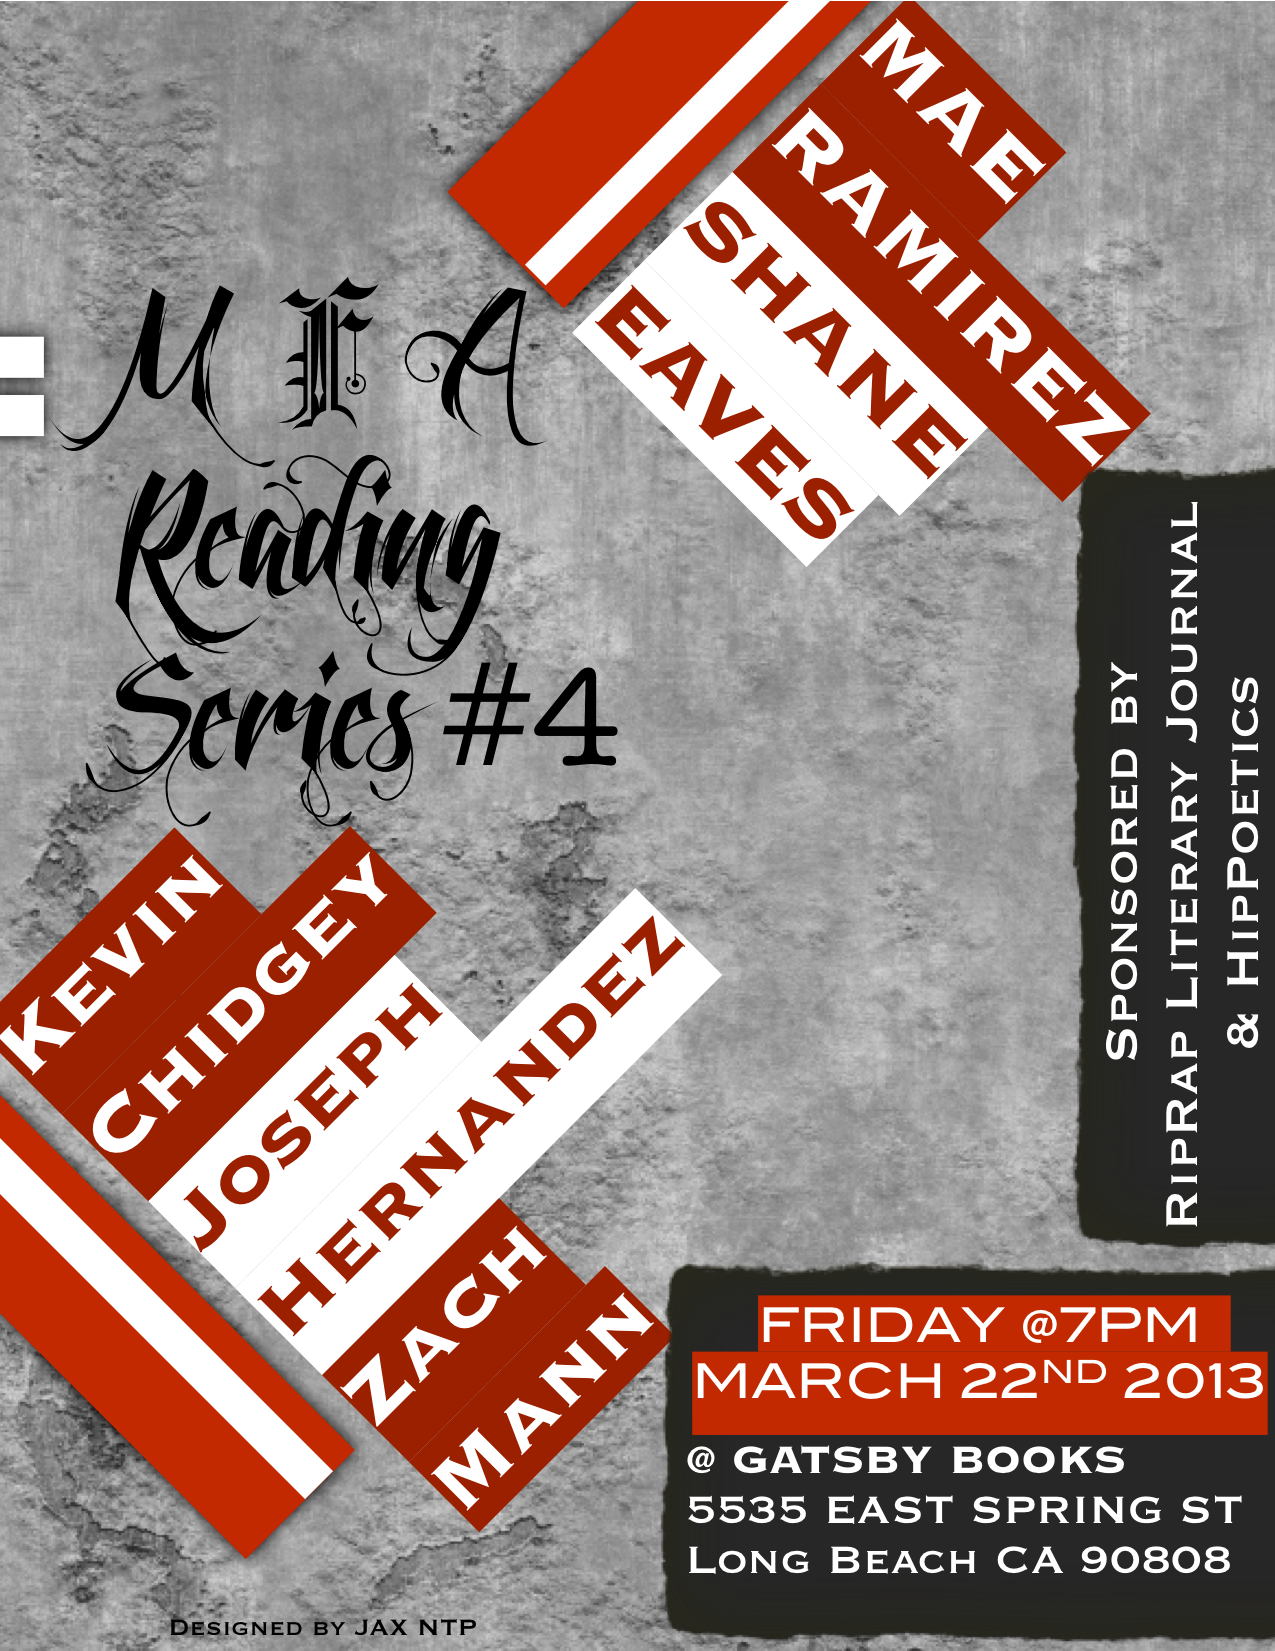 MFA Reading Series 4 (Ramirez and Eaves)